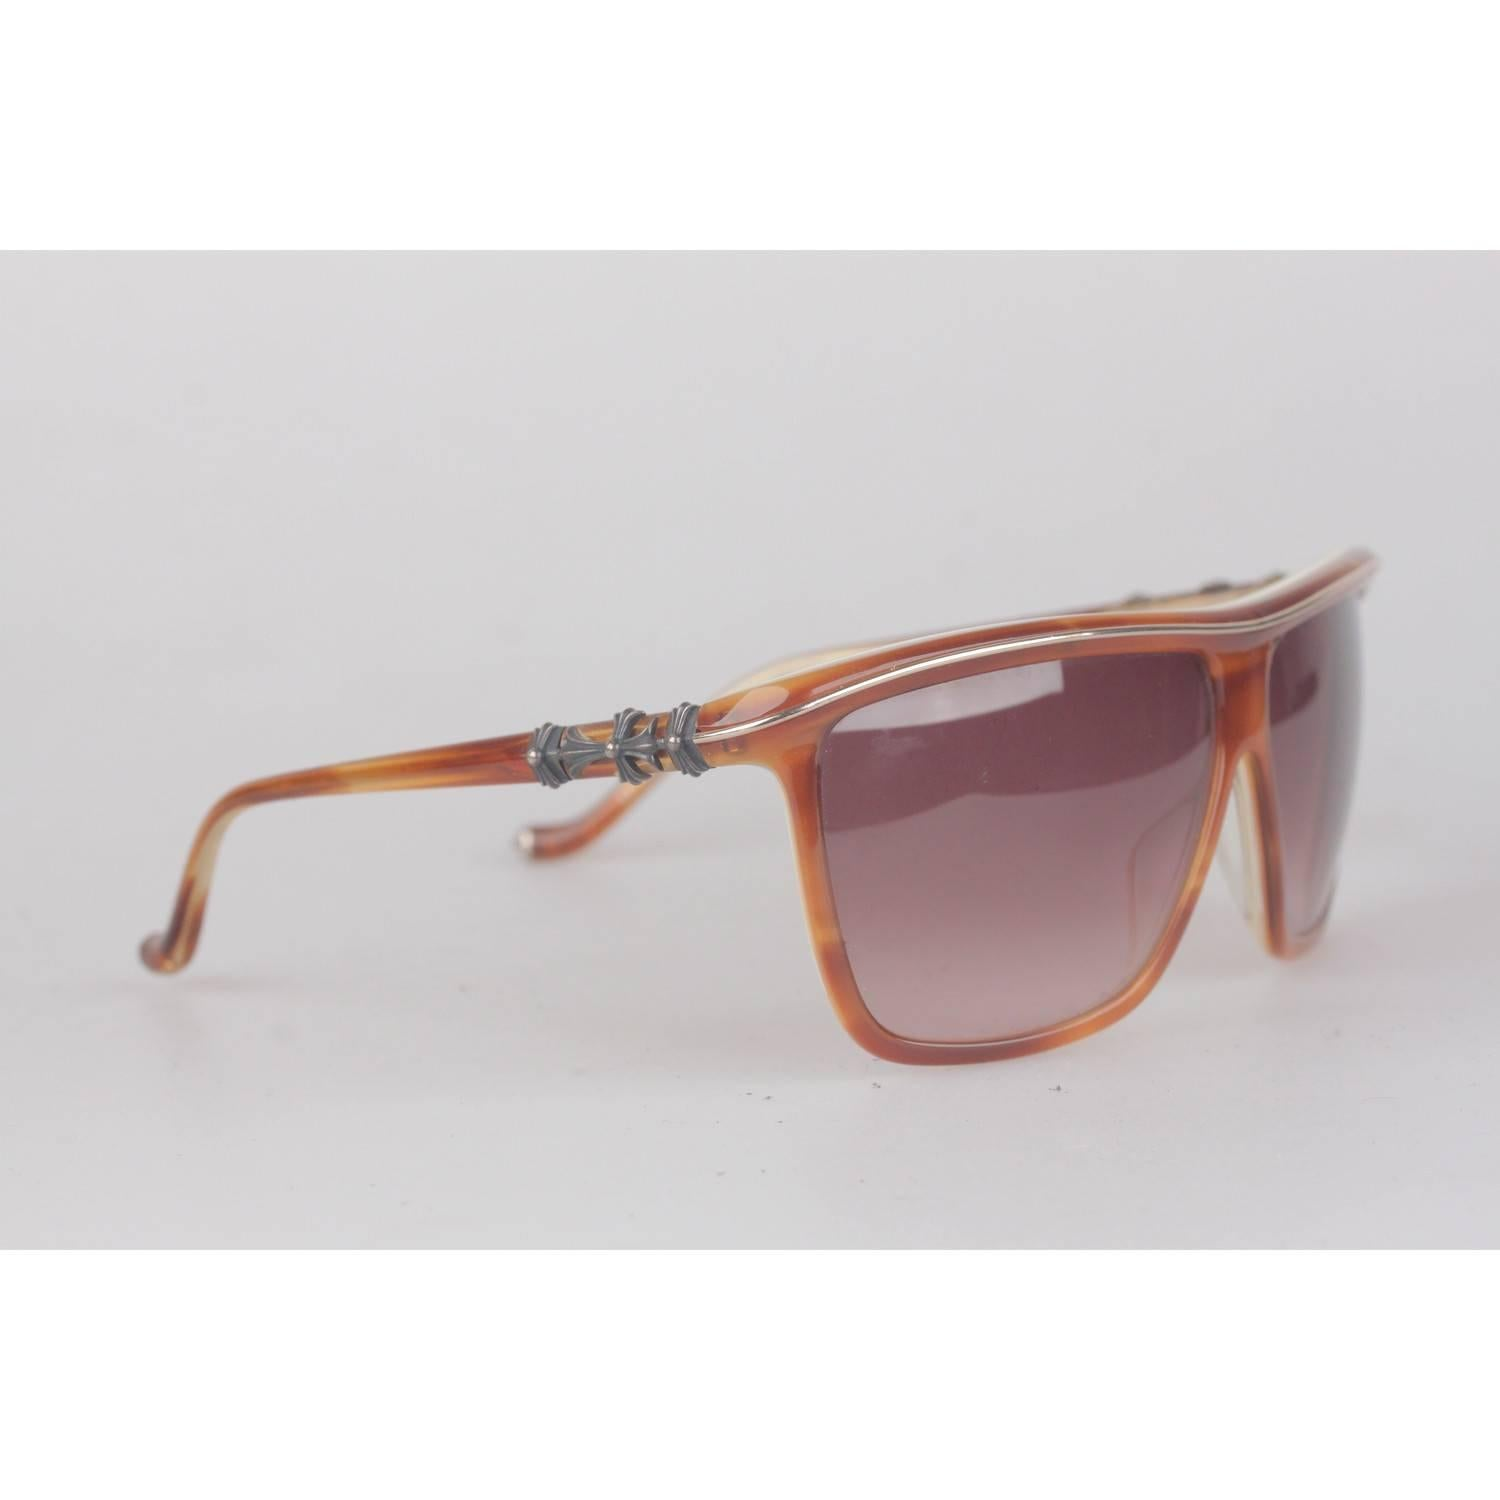 8a786837d0e CHROME HEARTS Brown Sunglasses mod PUSSY WIILOW 60-10mm with CASE For Sale  at 1stdibs